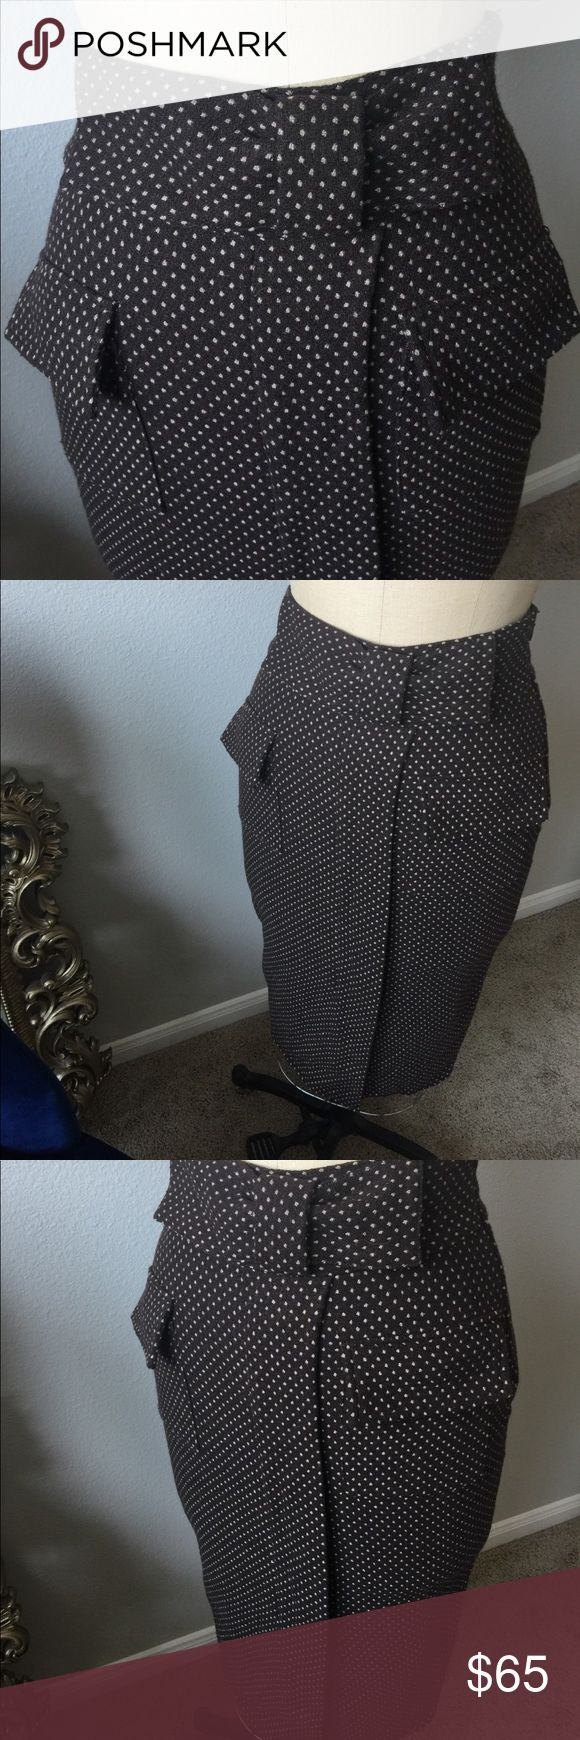 Diane von Furstenburg Brown Pencil Skirt Brown Pencil Skirt with Bow Detail at waist. Diane VonFurstenburg. Size 4. Measures 28 inches long. Two front pockets. 9 inch slit in front. A beautiful skirt!! Diane von Furstenberg Skirts Pencil